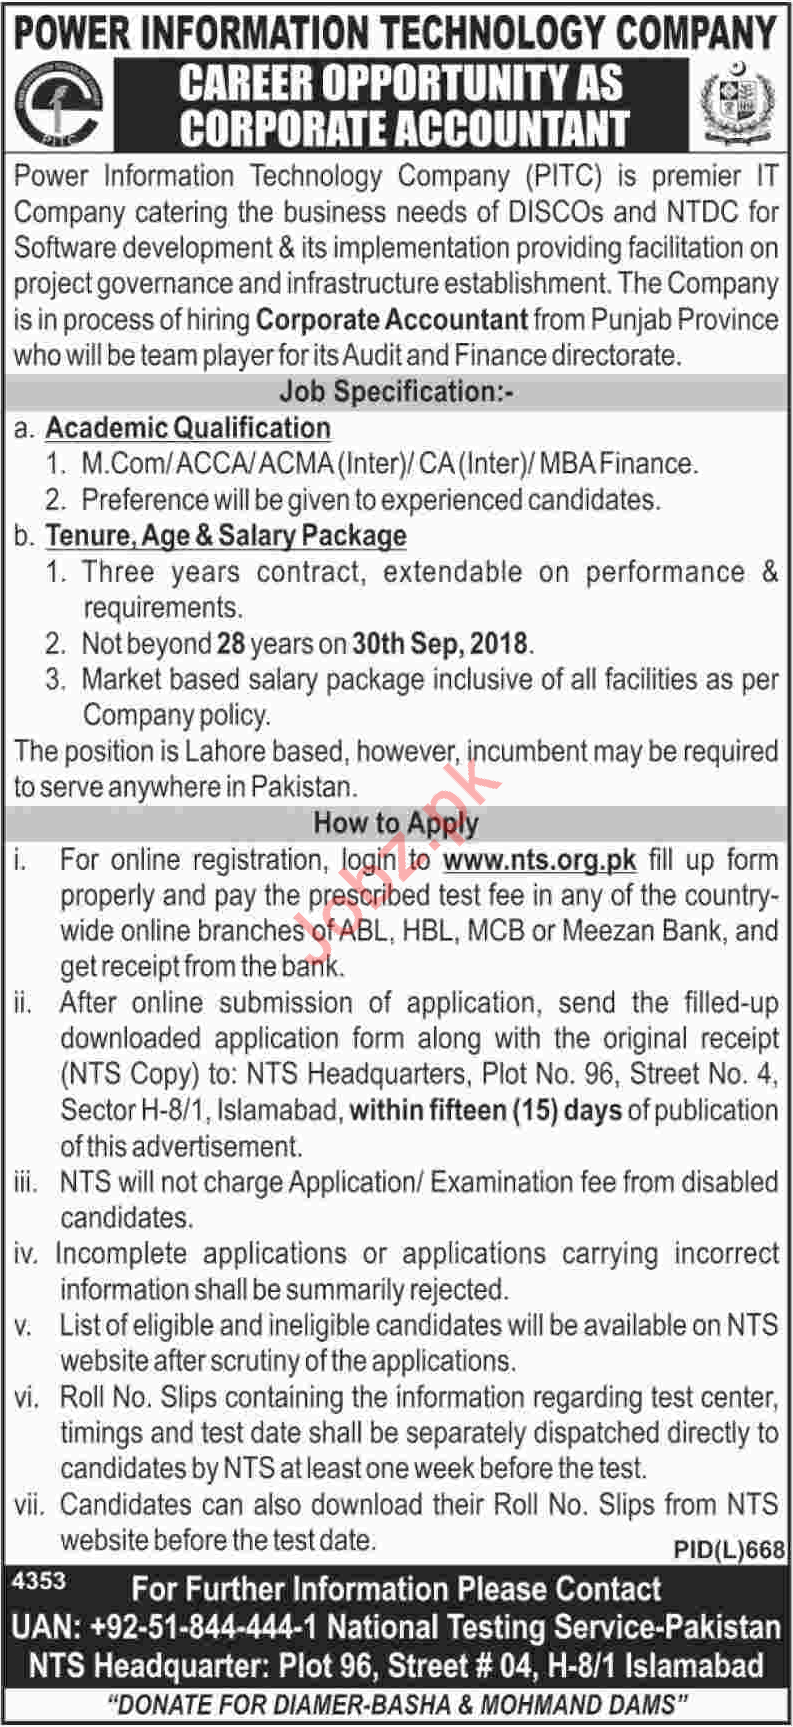 PITC Corporate Accountant Job Opportunities